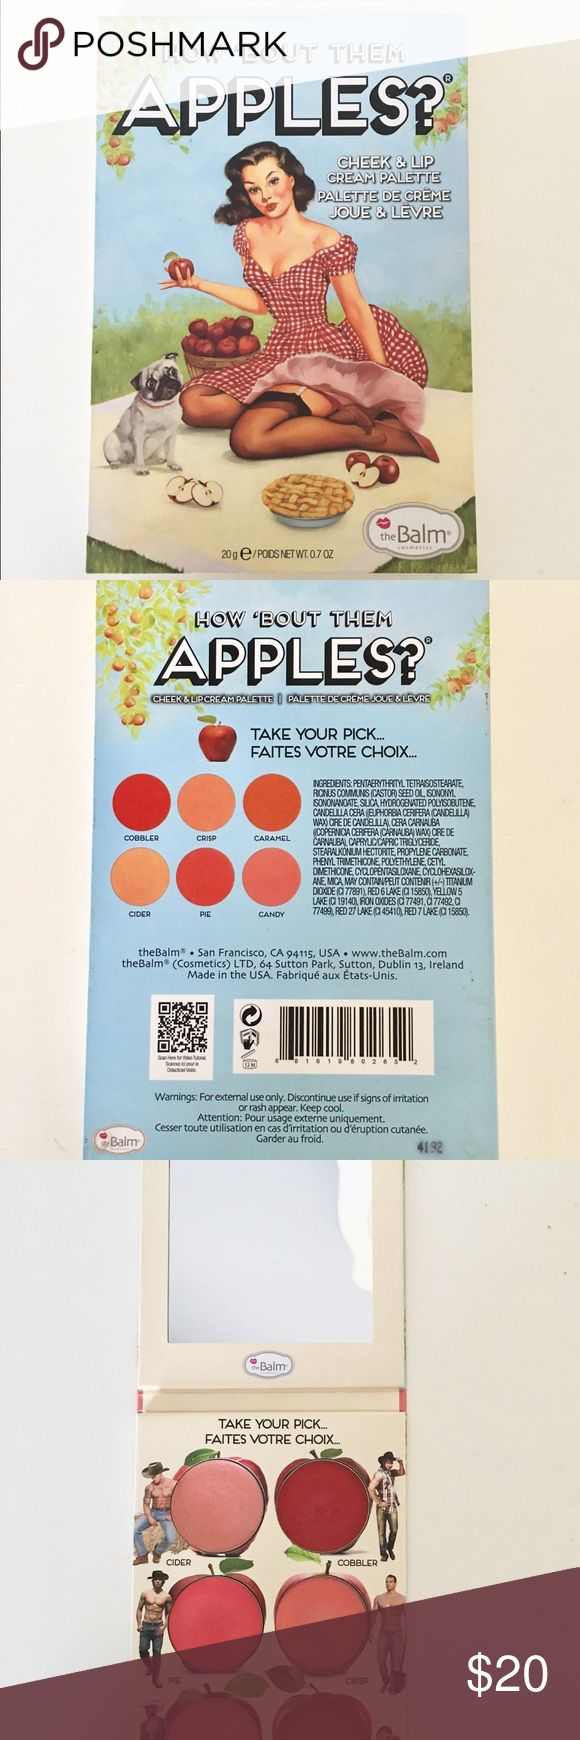 The Balm How Bout Them Apples Palette The Balm How Bout Them Apples Palette. Pigmented cream blushes. Sorry no trades. the balm Makeup Blush